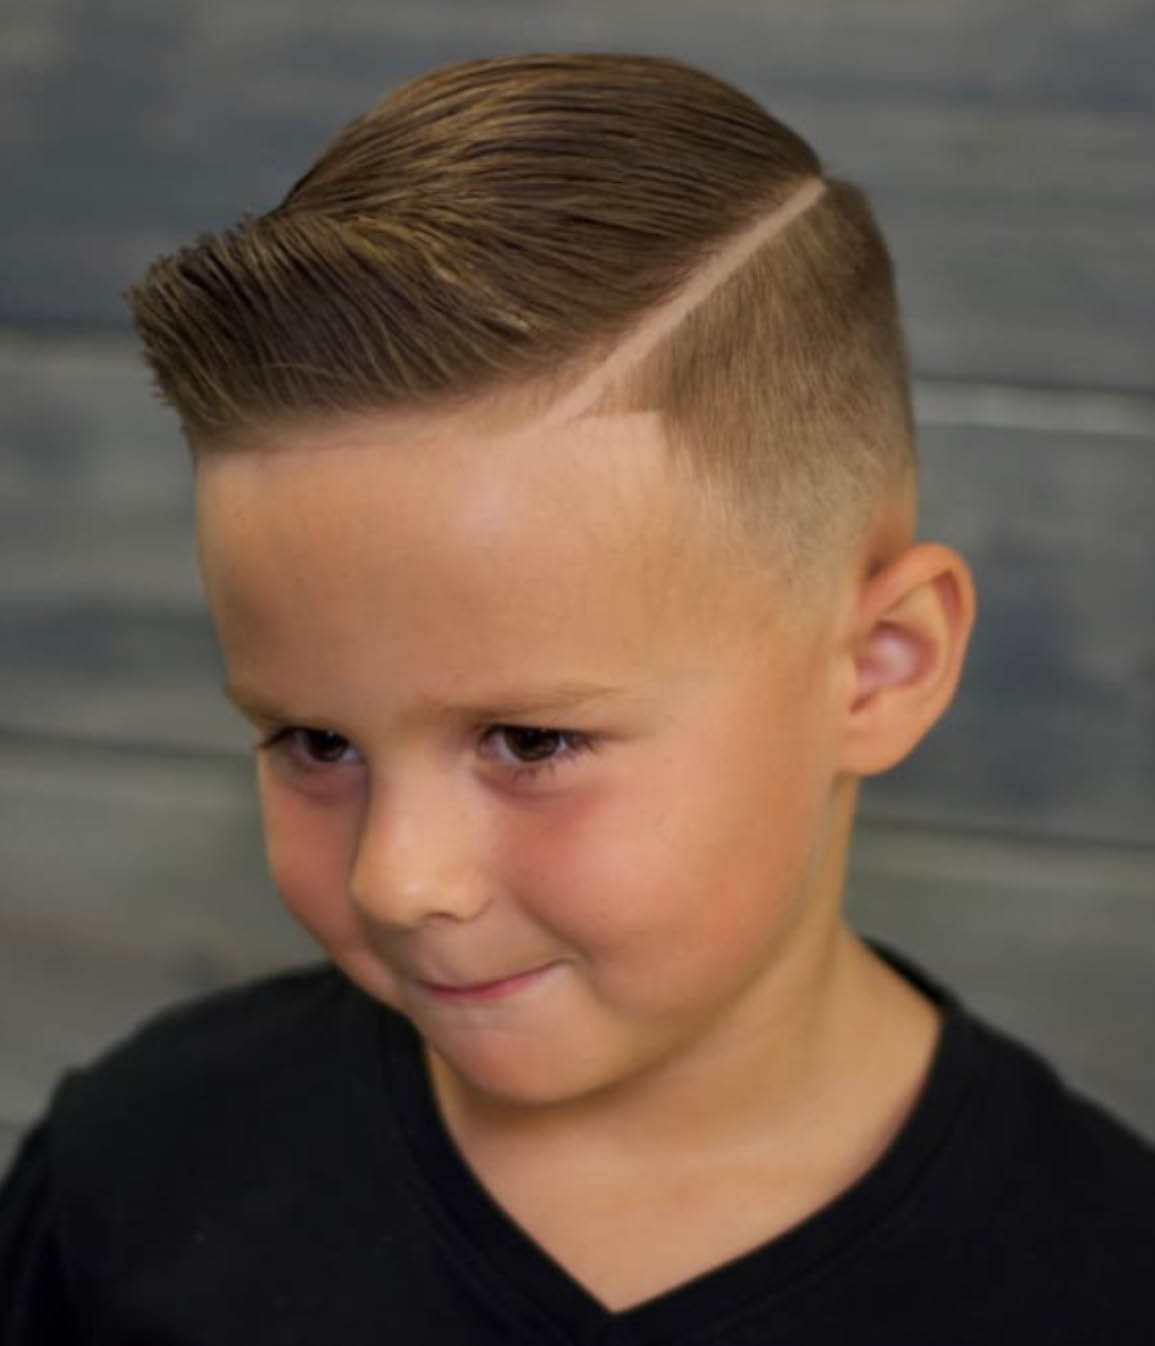 kids haircuts mission viejo ca kids haircut coupons near me kid friendly barber shop mission viejo